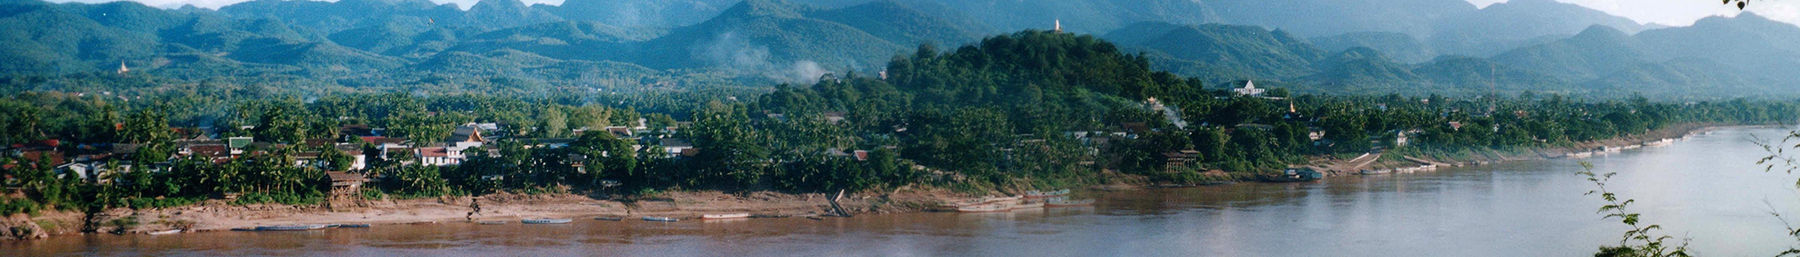 The town on the banks of the Mekong.